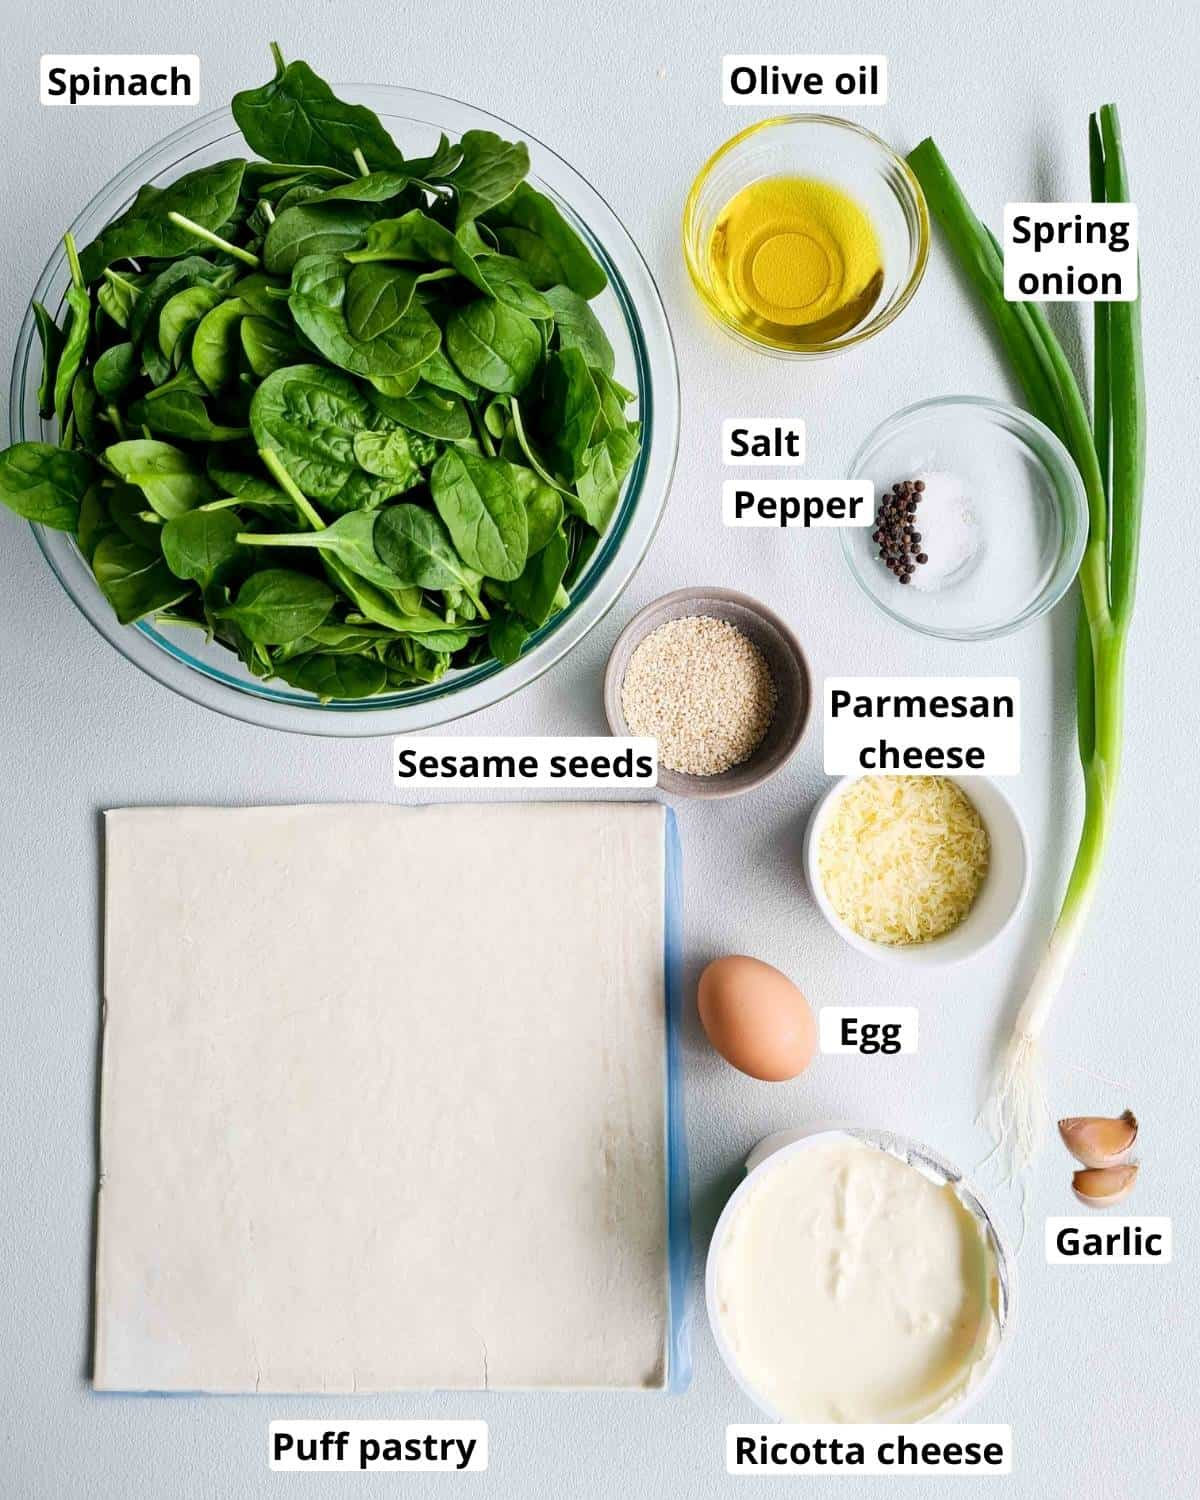 all ingredients required to make this recipe